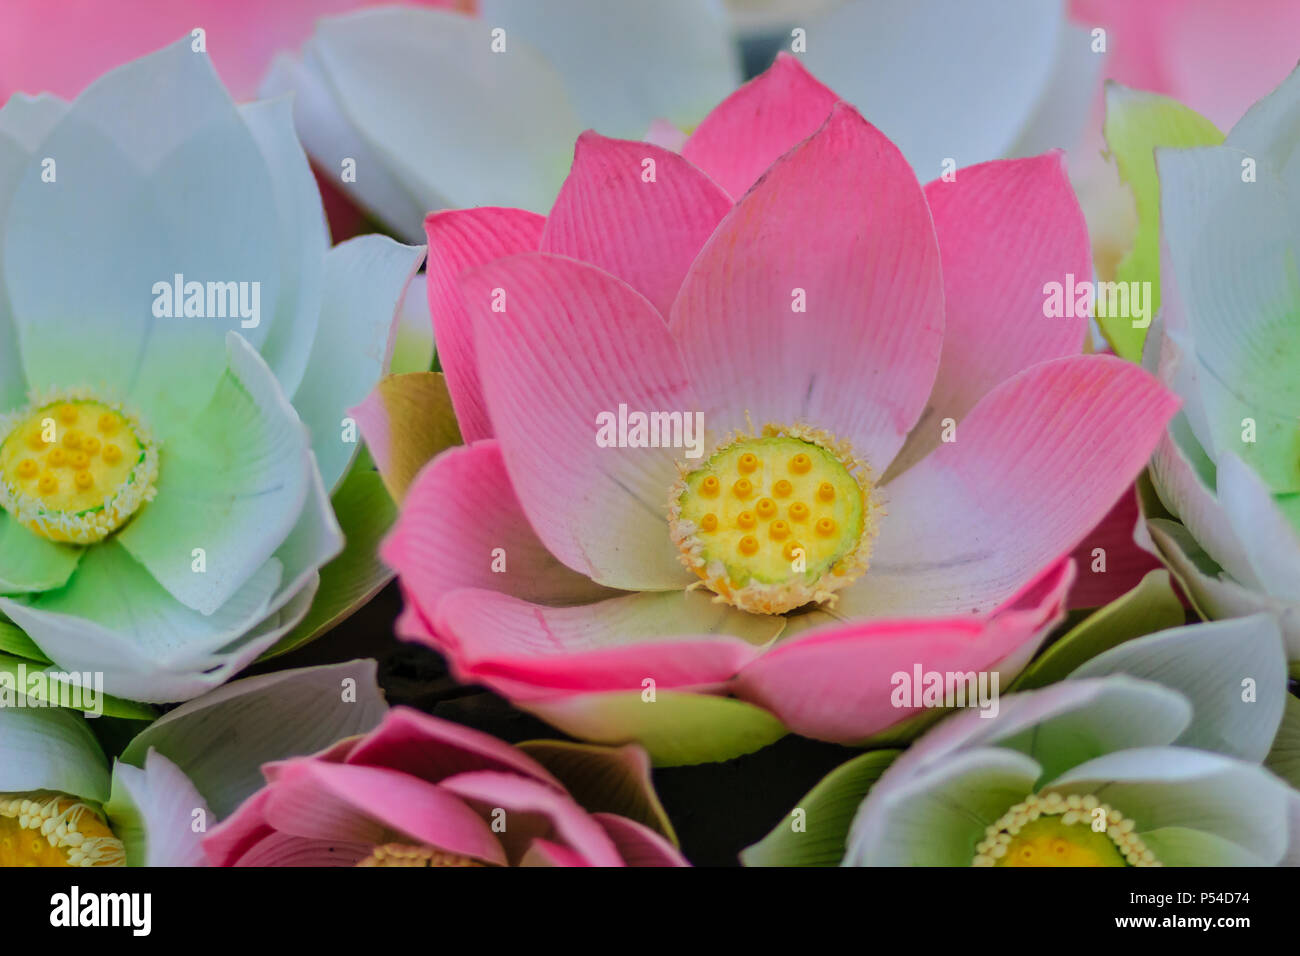 Cute artificial pink lotus flowers or water lily artificial lotus cute artificial pink lotus flowers or water lily artificial lotus flower handmade paper lotus flower with pink leaf and yellow petal diy art produc mightylinksfo